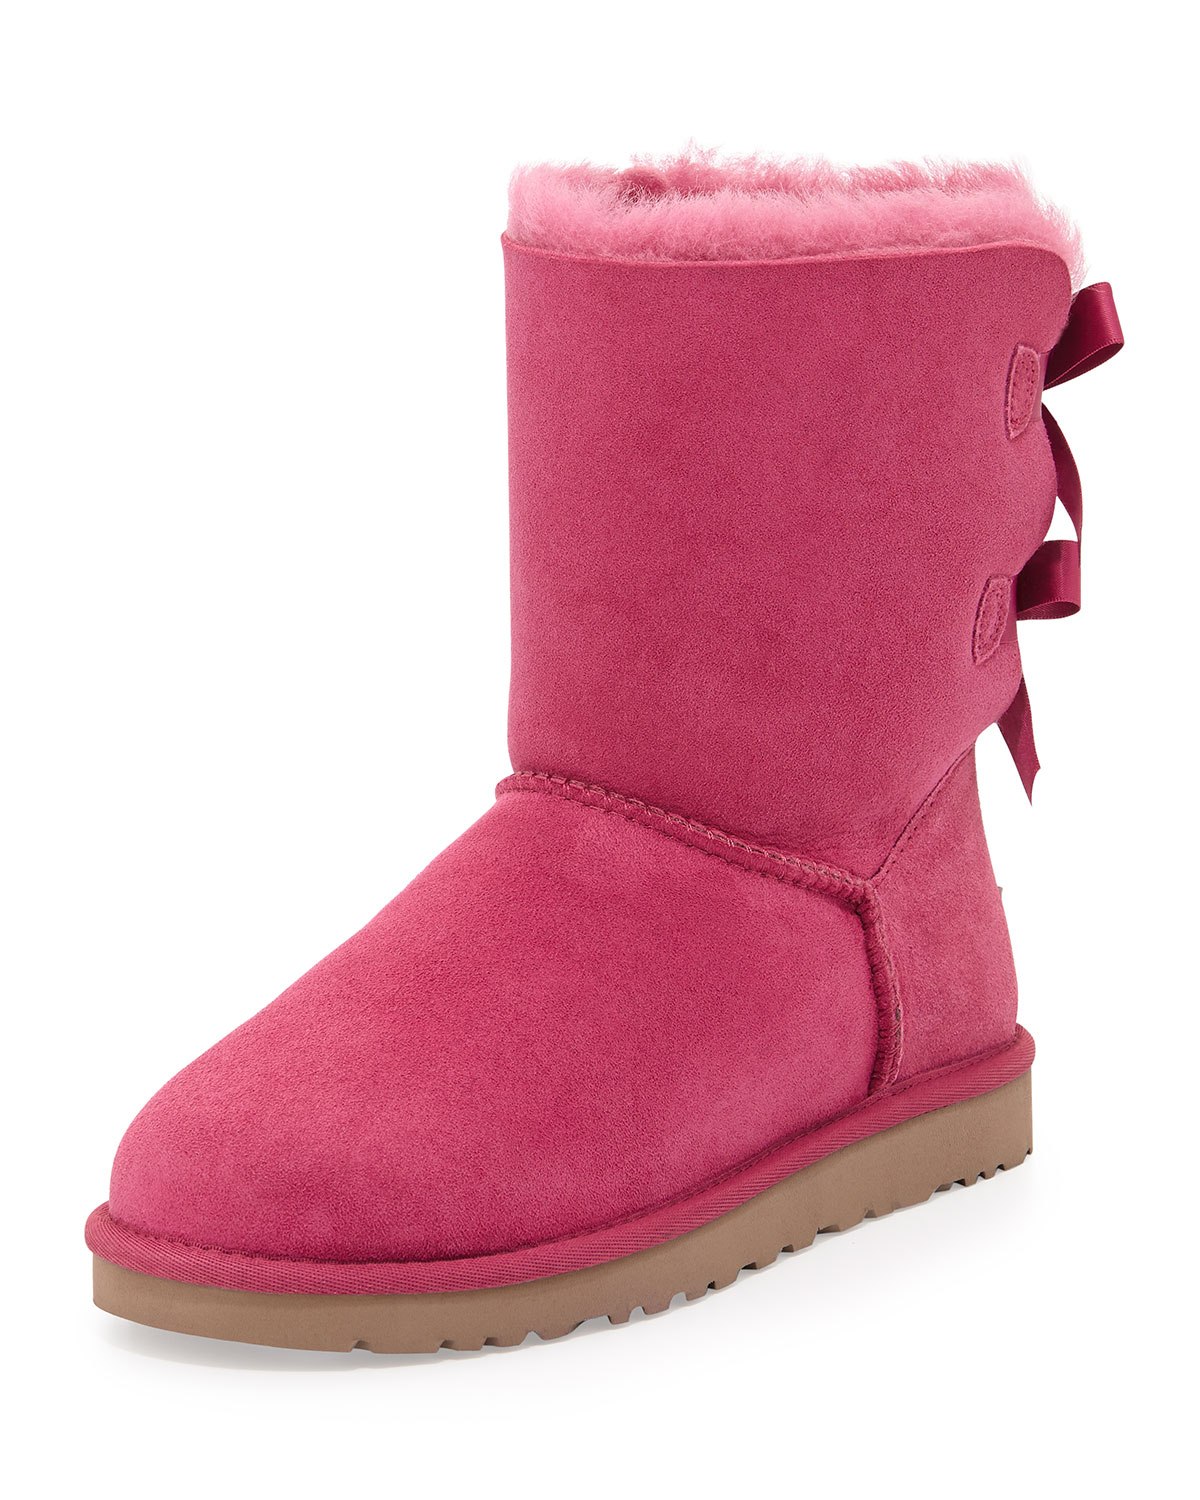 ugg bailey bow back short boot in pink victorian pink lyst. Black Bedroom Furniture Sets. Home Design Ideas